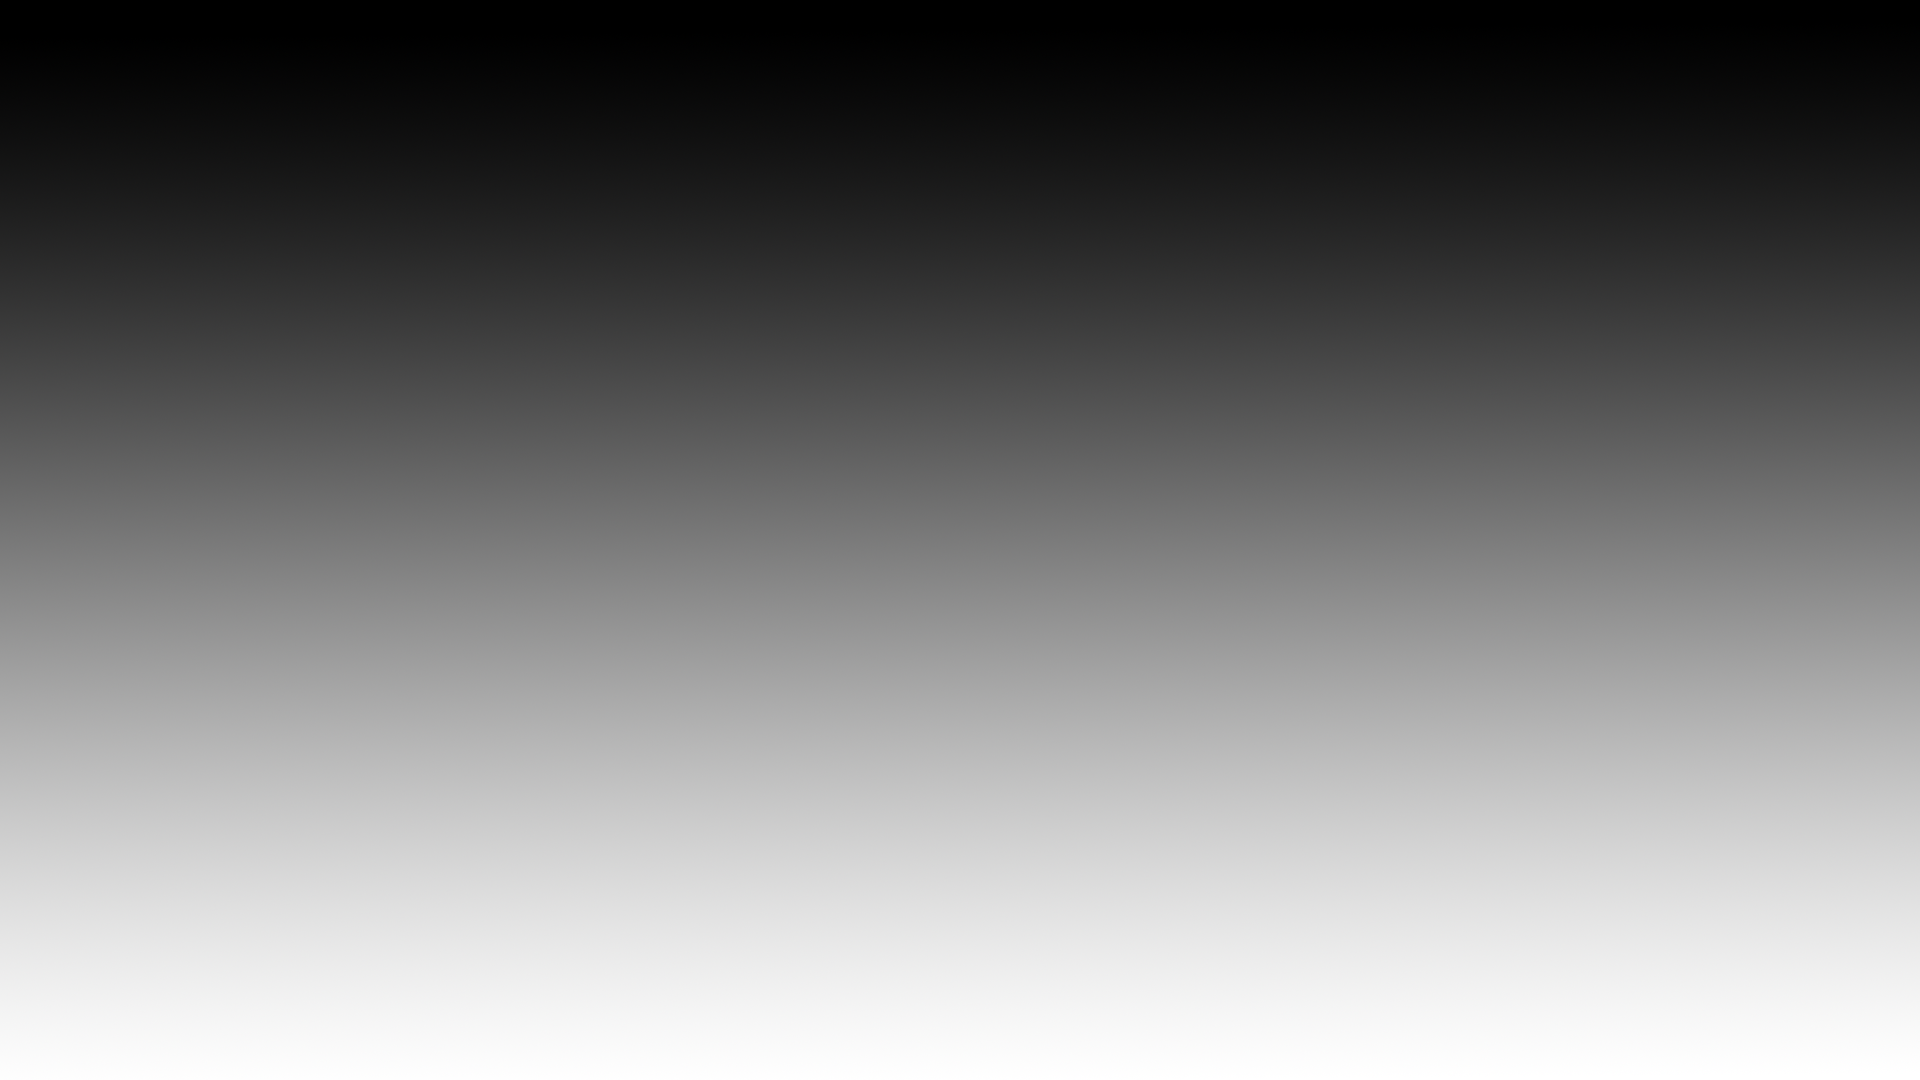 Nothing found for Black-and-gray-silver-gradient-desktop-wallpaper